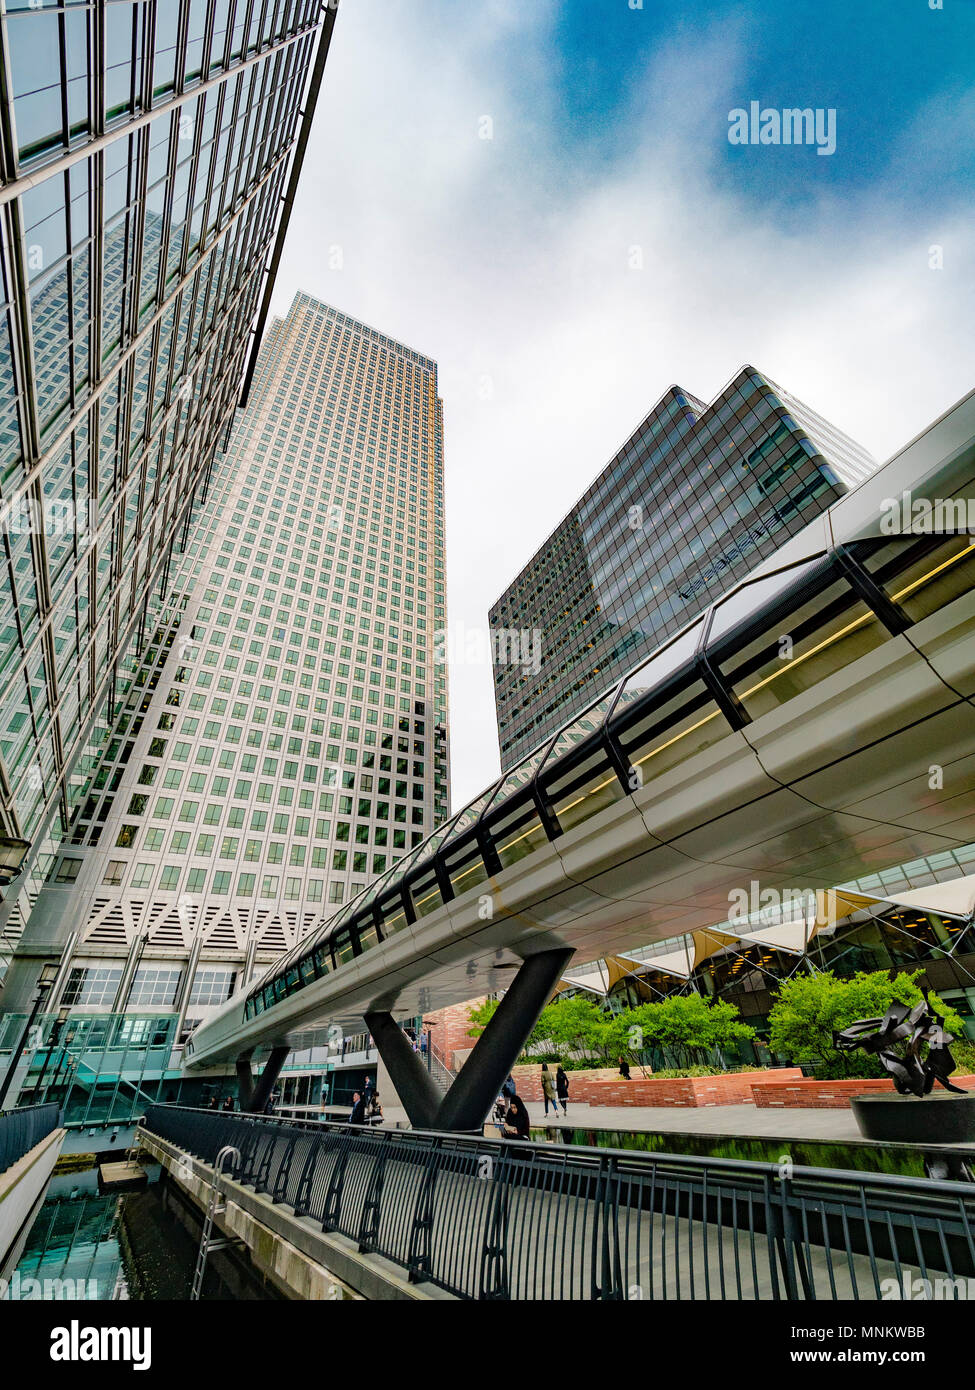 Adams Plaza Bridge, entrance to Crossrail Place, Canary Wharf, London, UK. into Crossrail Place, with One Canada Square skyscraper in background, Cana - Stock Image